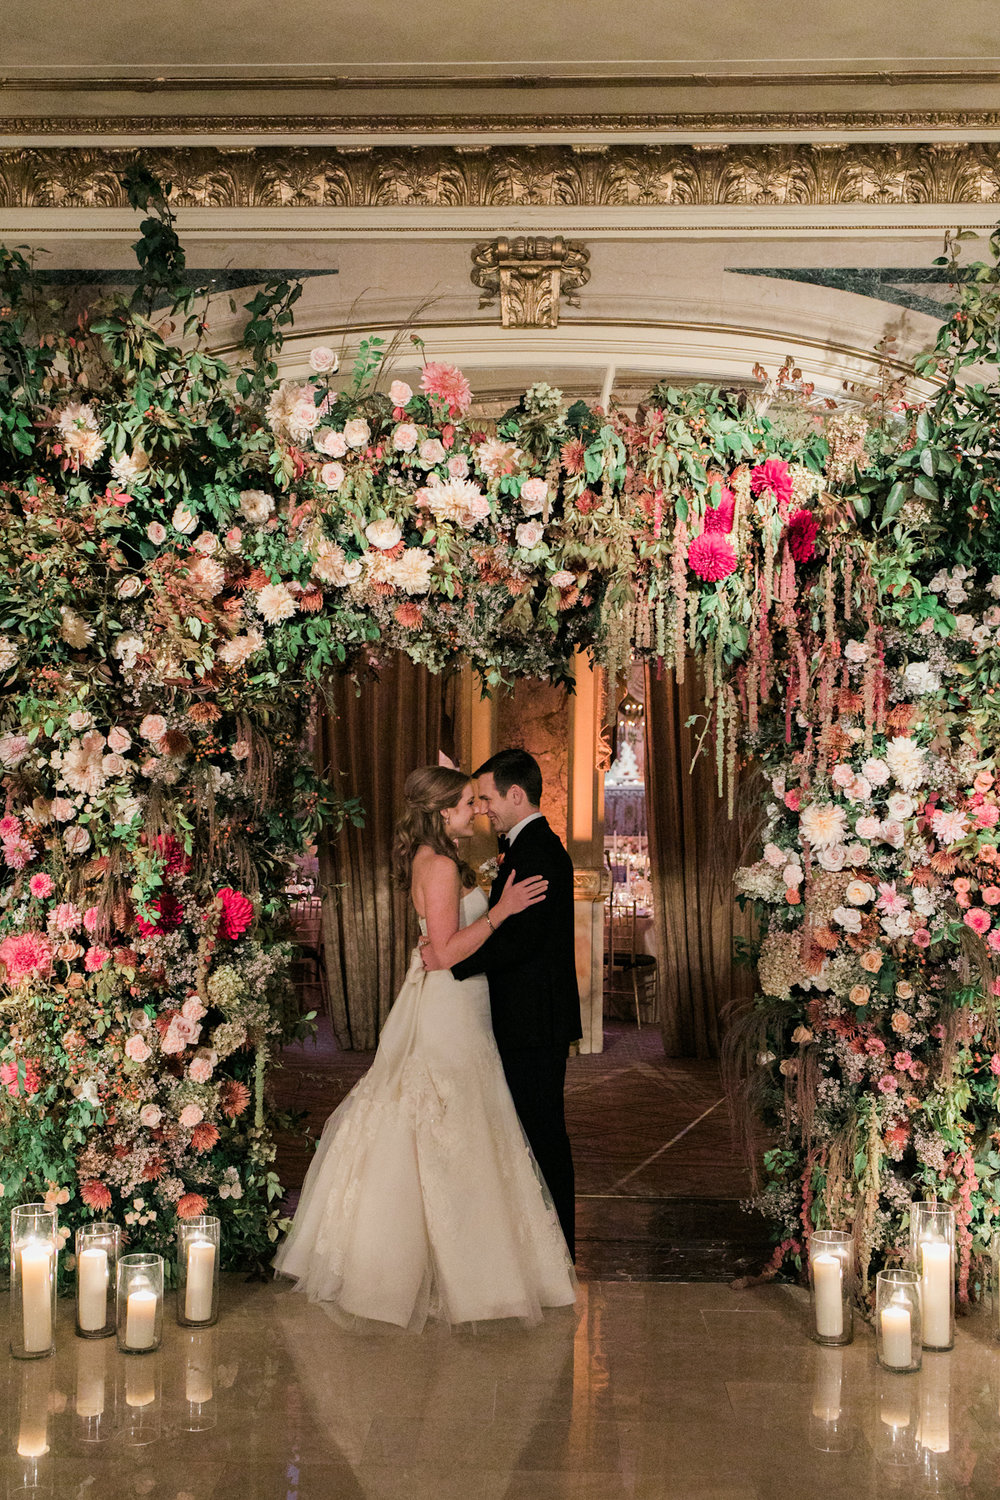 Plaza Hotel Wedding, Judy Pak Photography, Ang Weddings and Events planning, Putnam & Putnam flowers